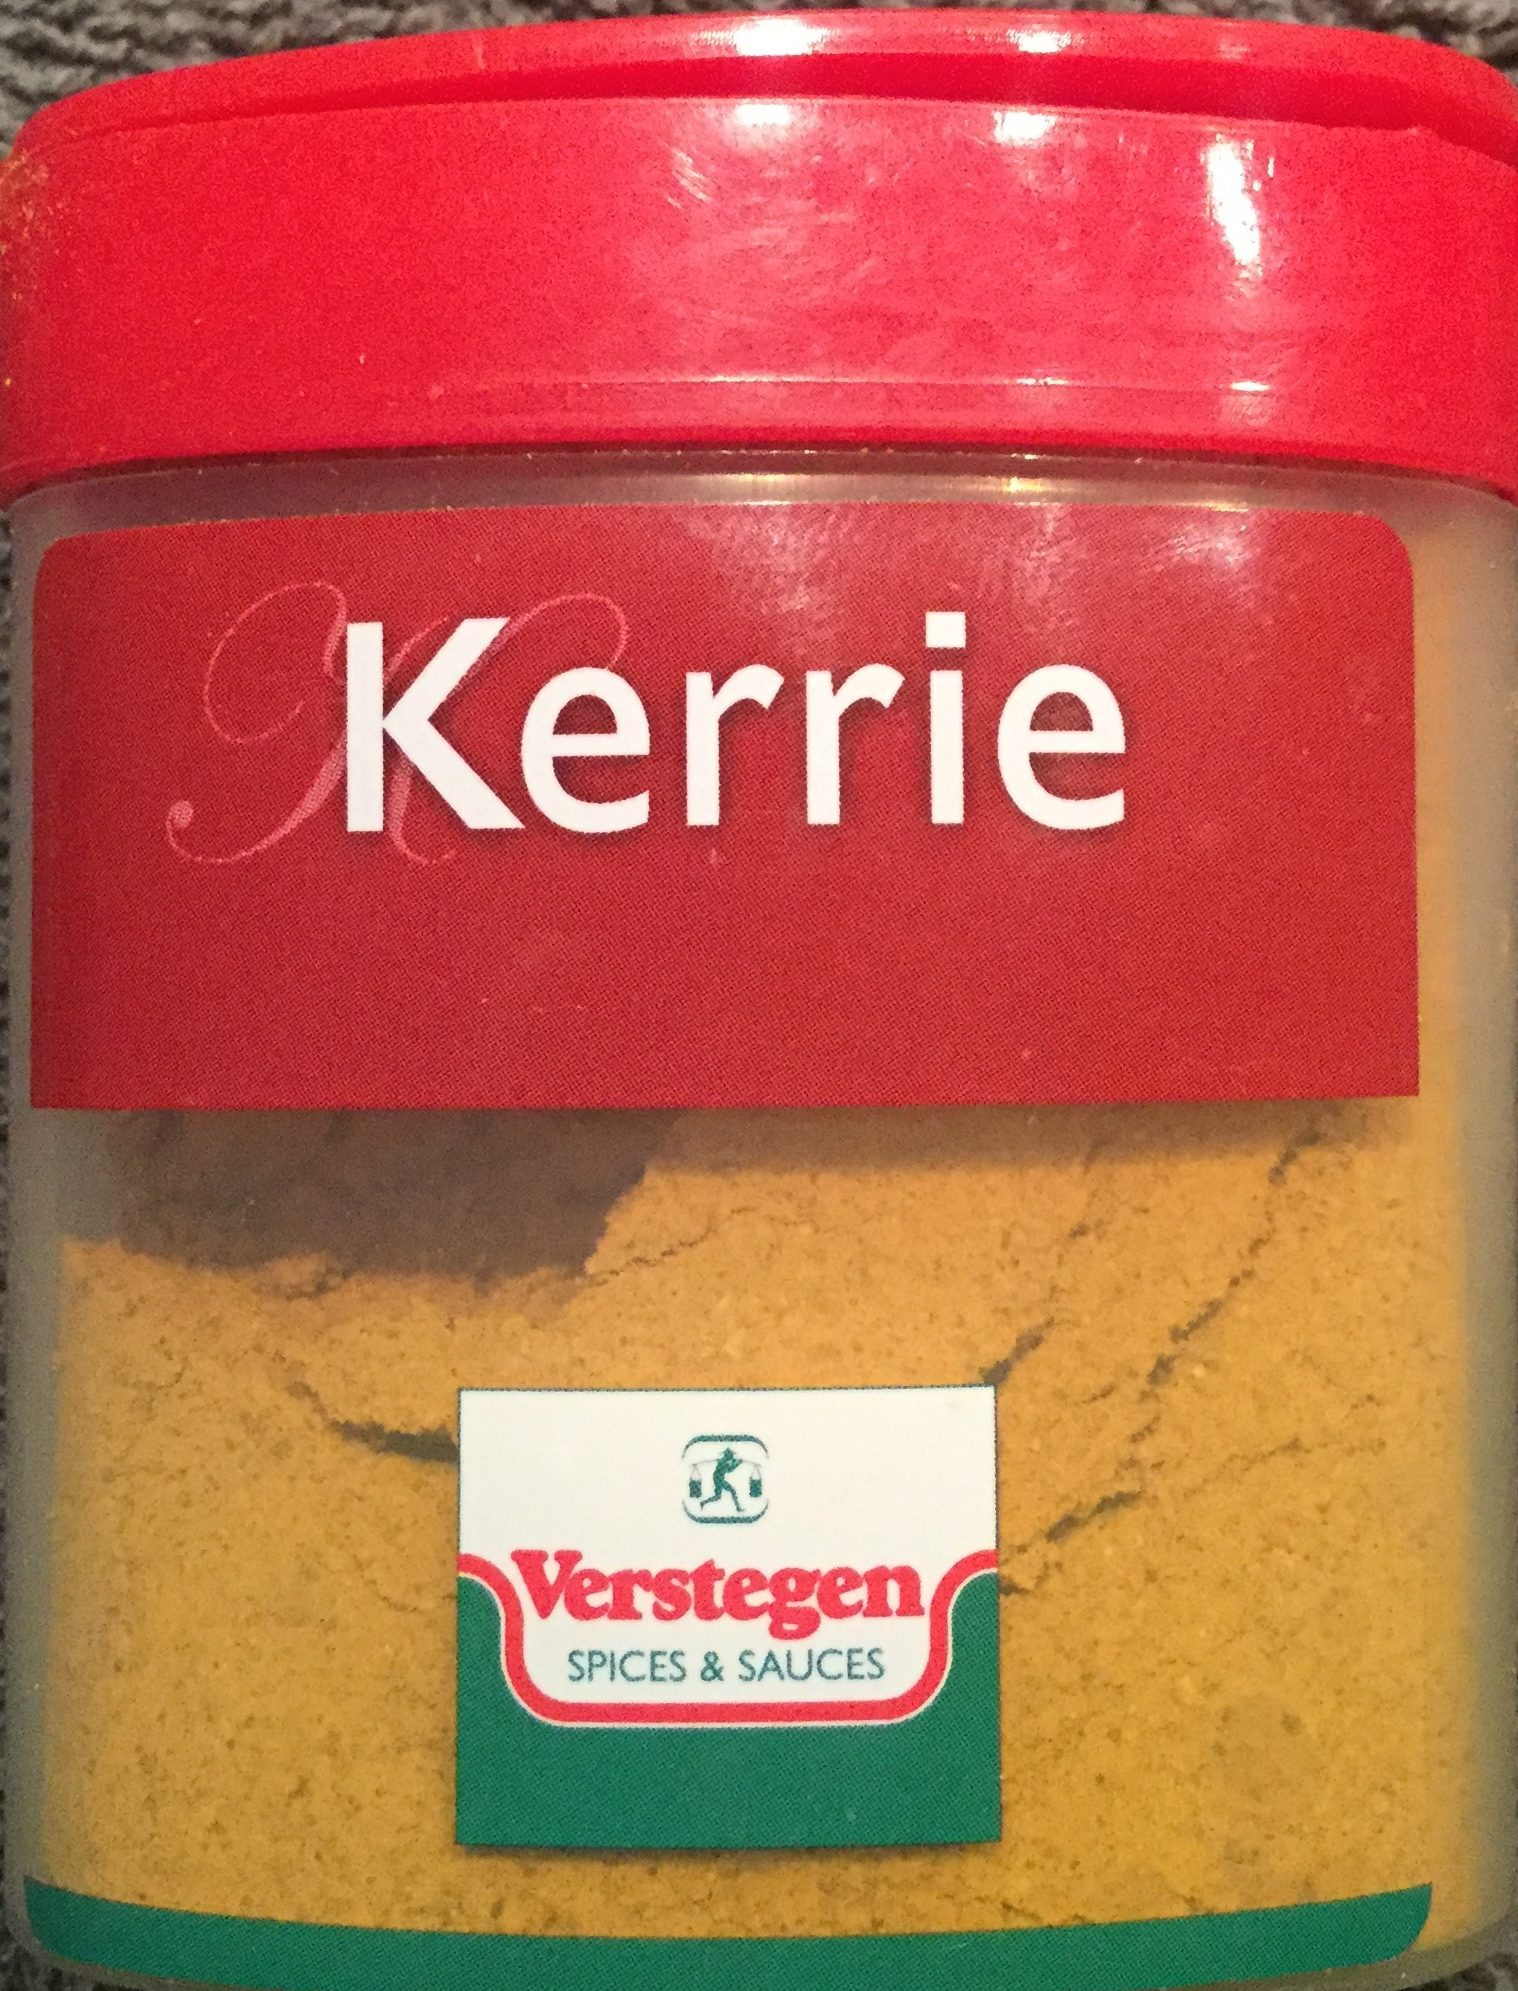 Kerrie - Product